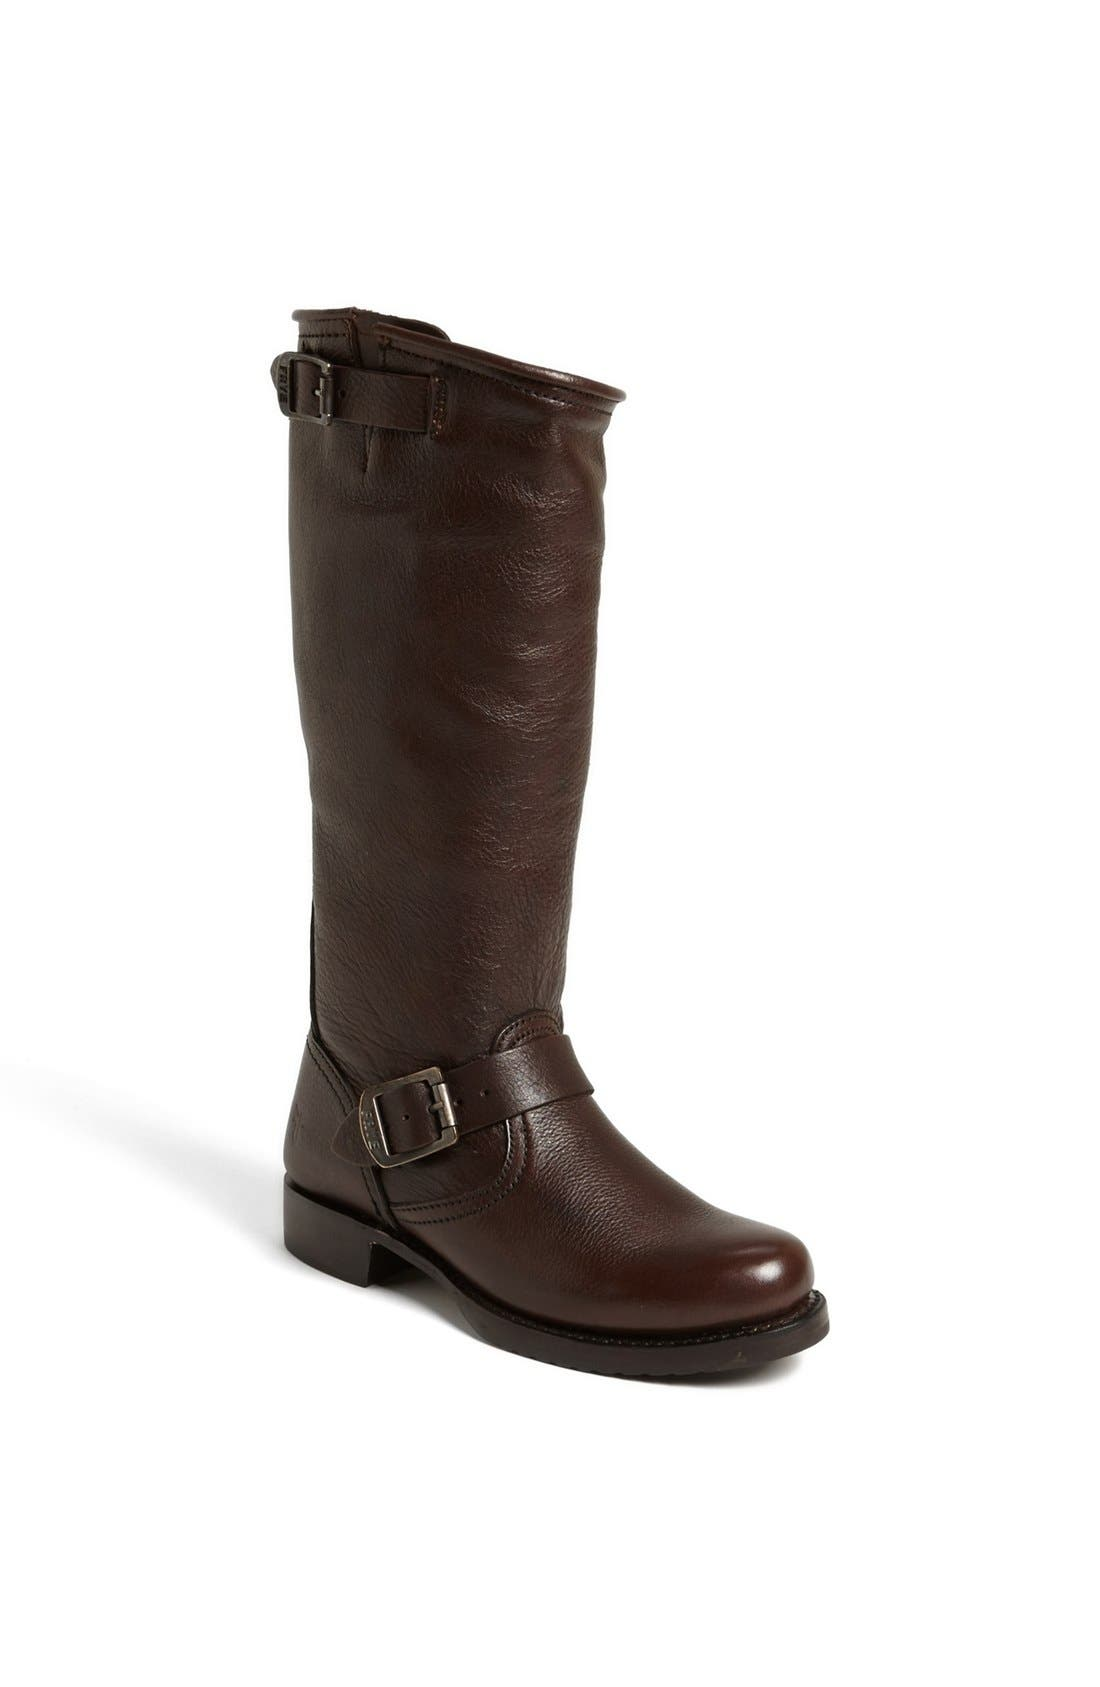 Alternate Image 1 Selected - Frye 'Veronica' Slouchy Boot